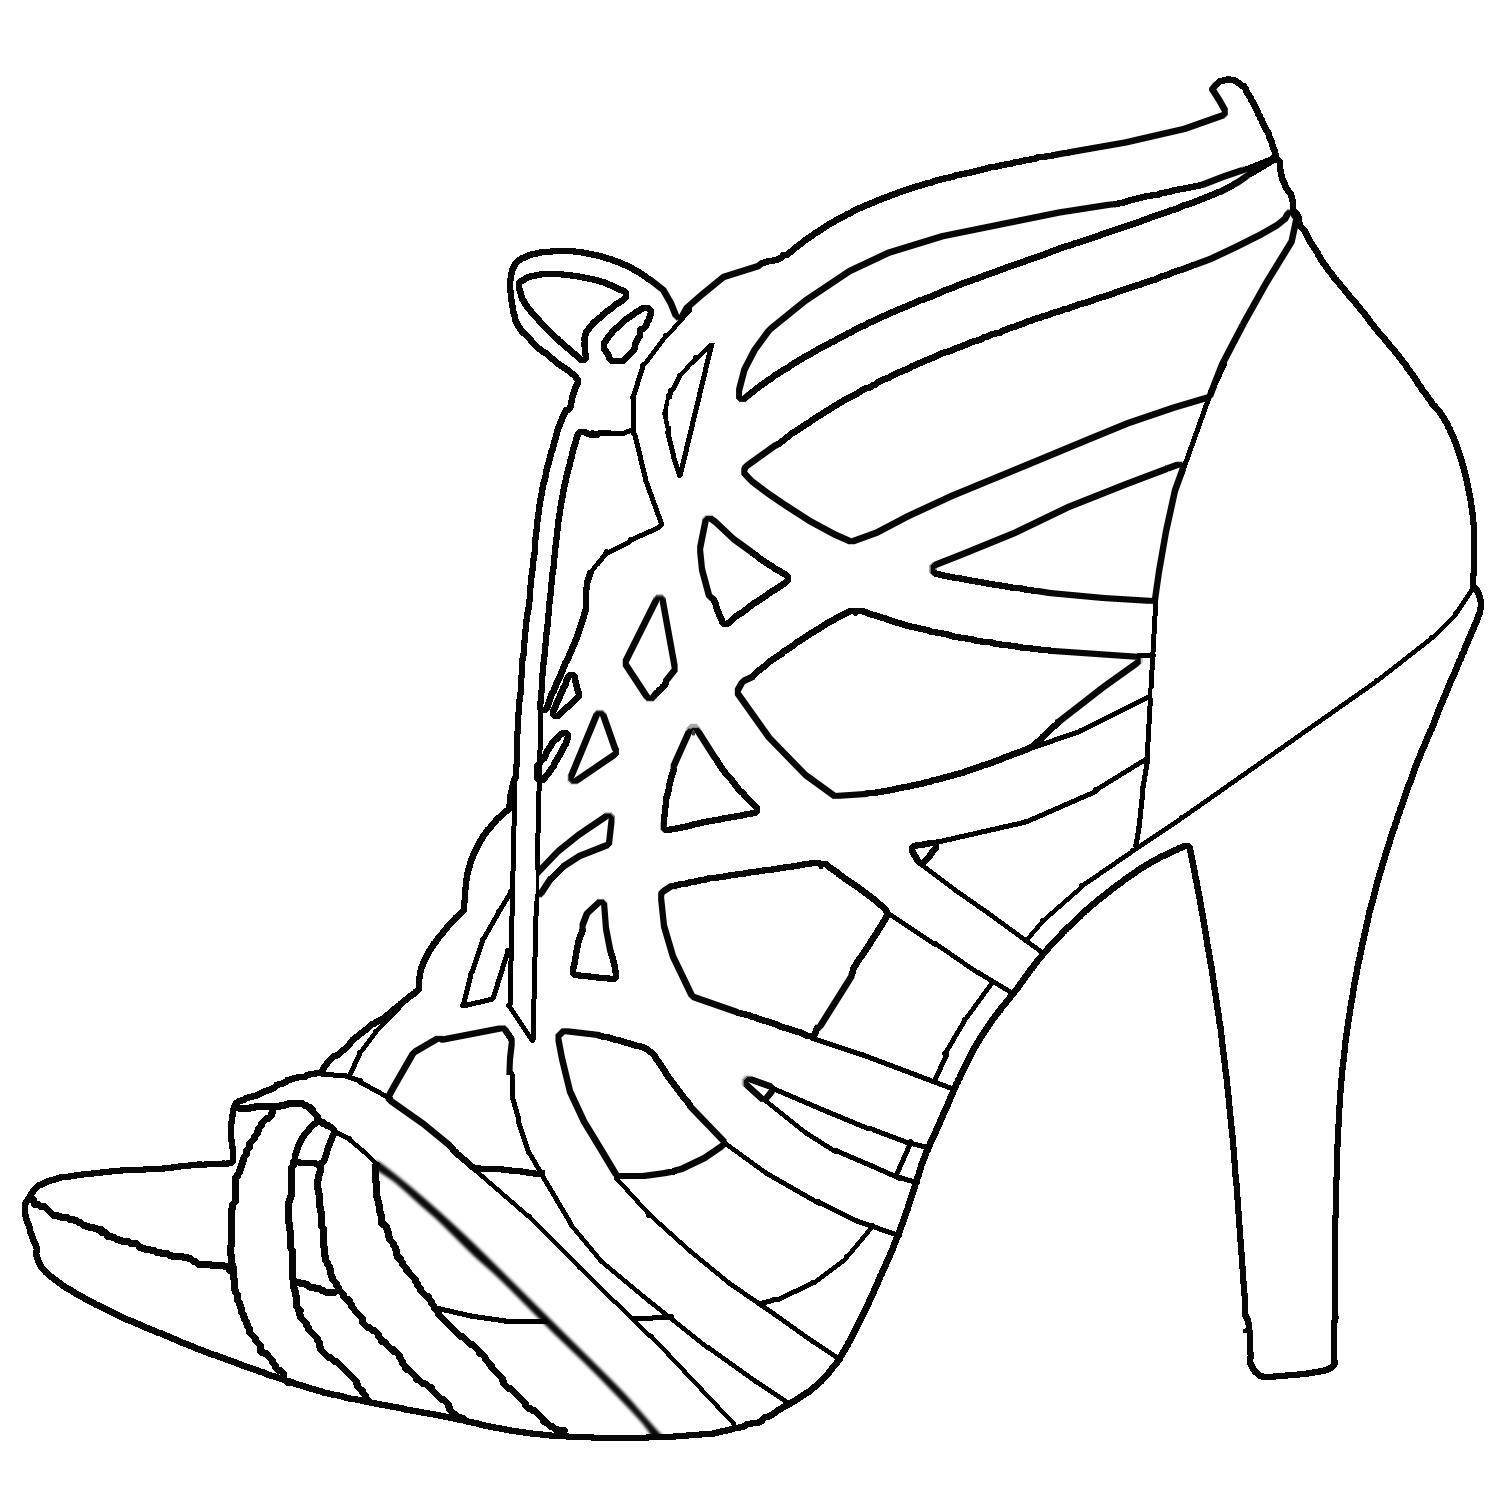 shoes drawing simple shoe drawing at getdrawings free download shoes drawing